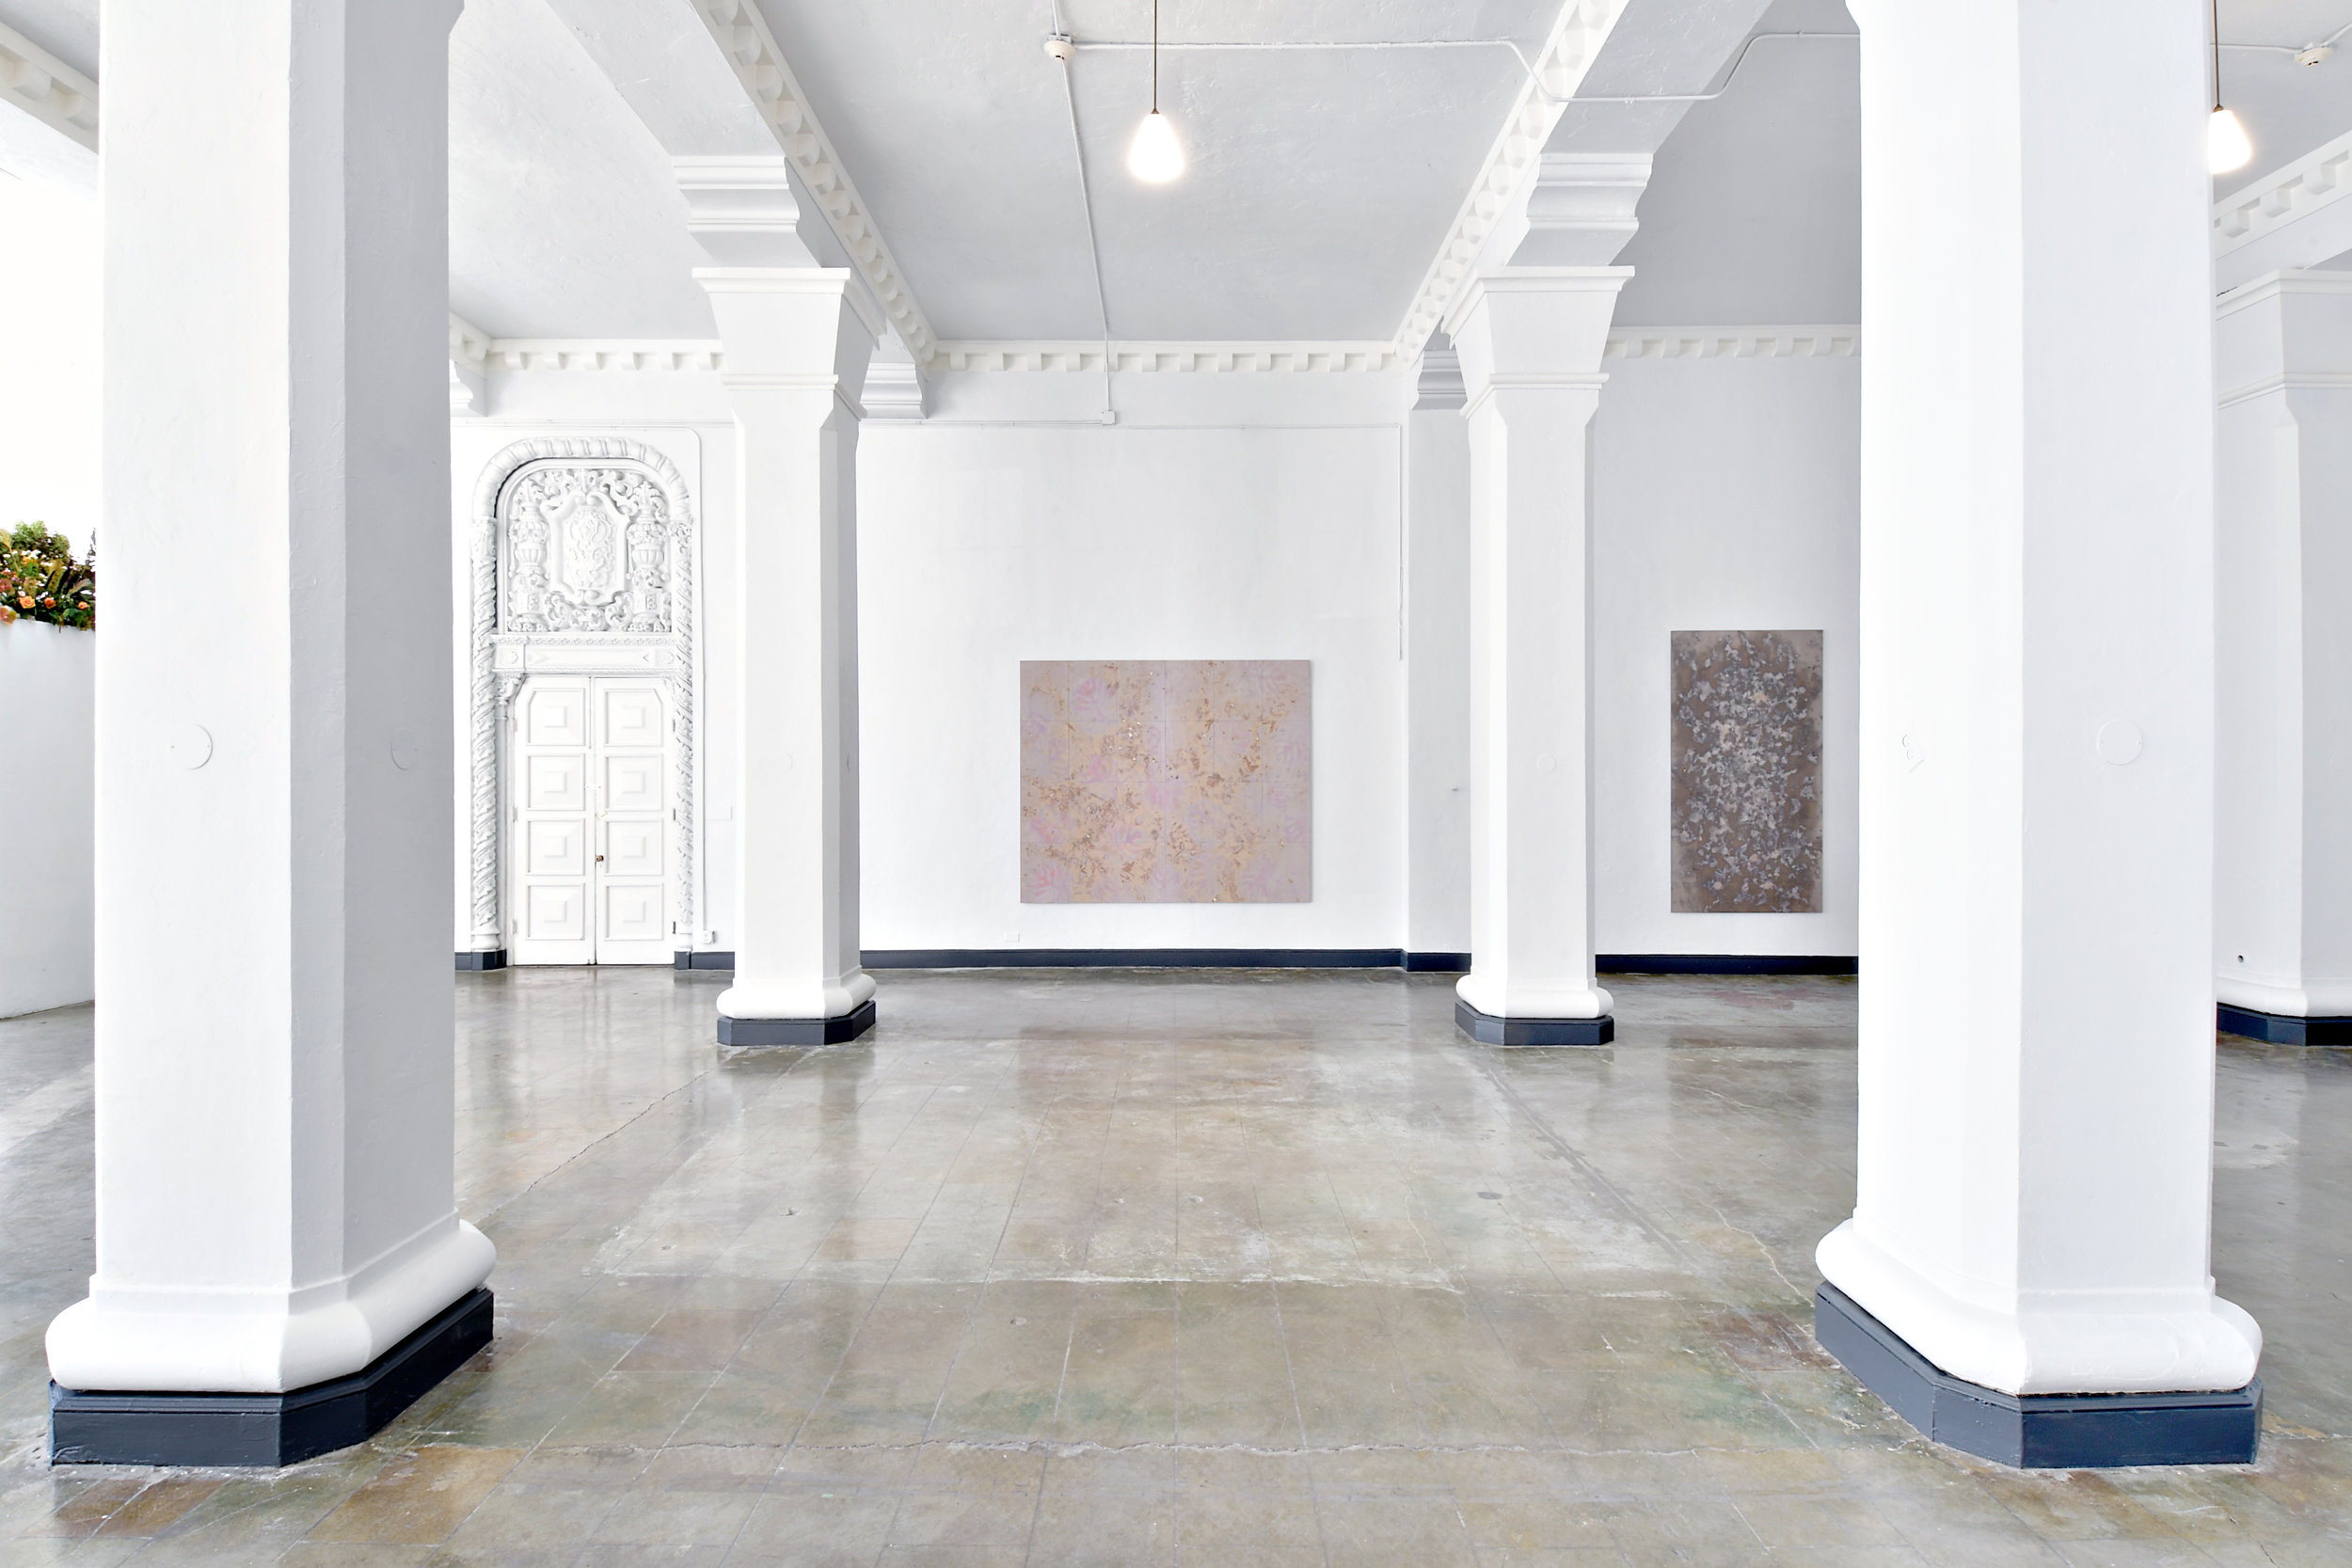 """Installation view of """" Somewhere I Have Traveled """" by Robert Canali, 2017"""